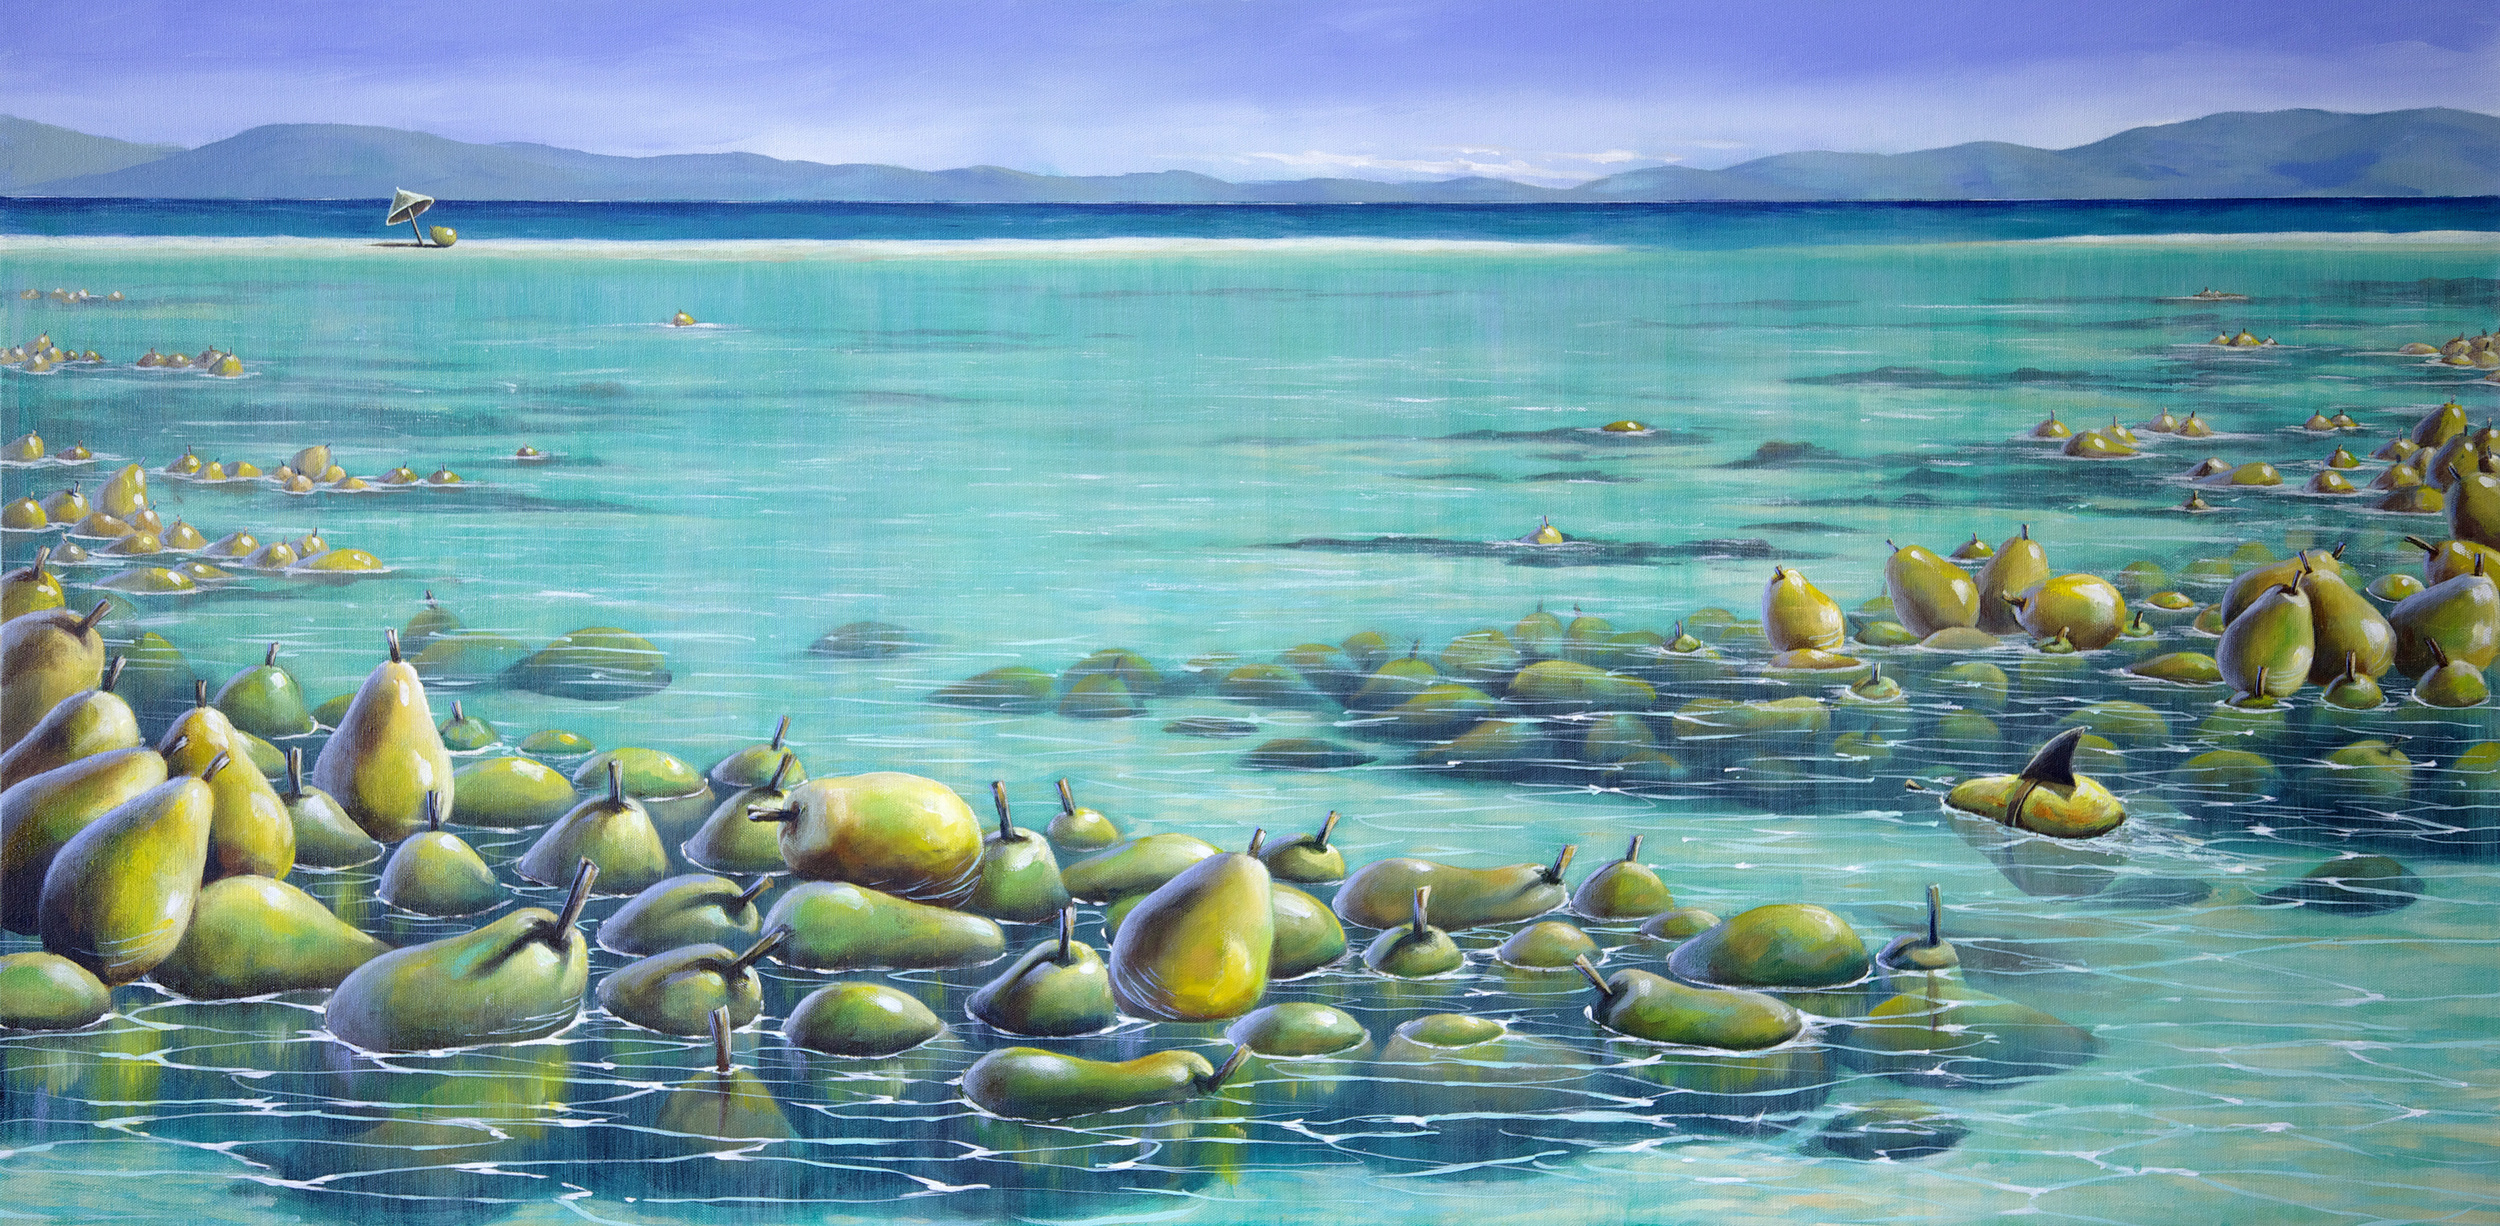 """""""The Great Pearrier Reef""""           24"""" x 48 """", Acrylic on canvas"""